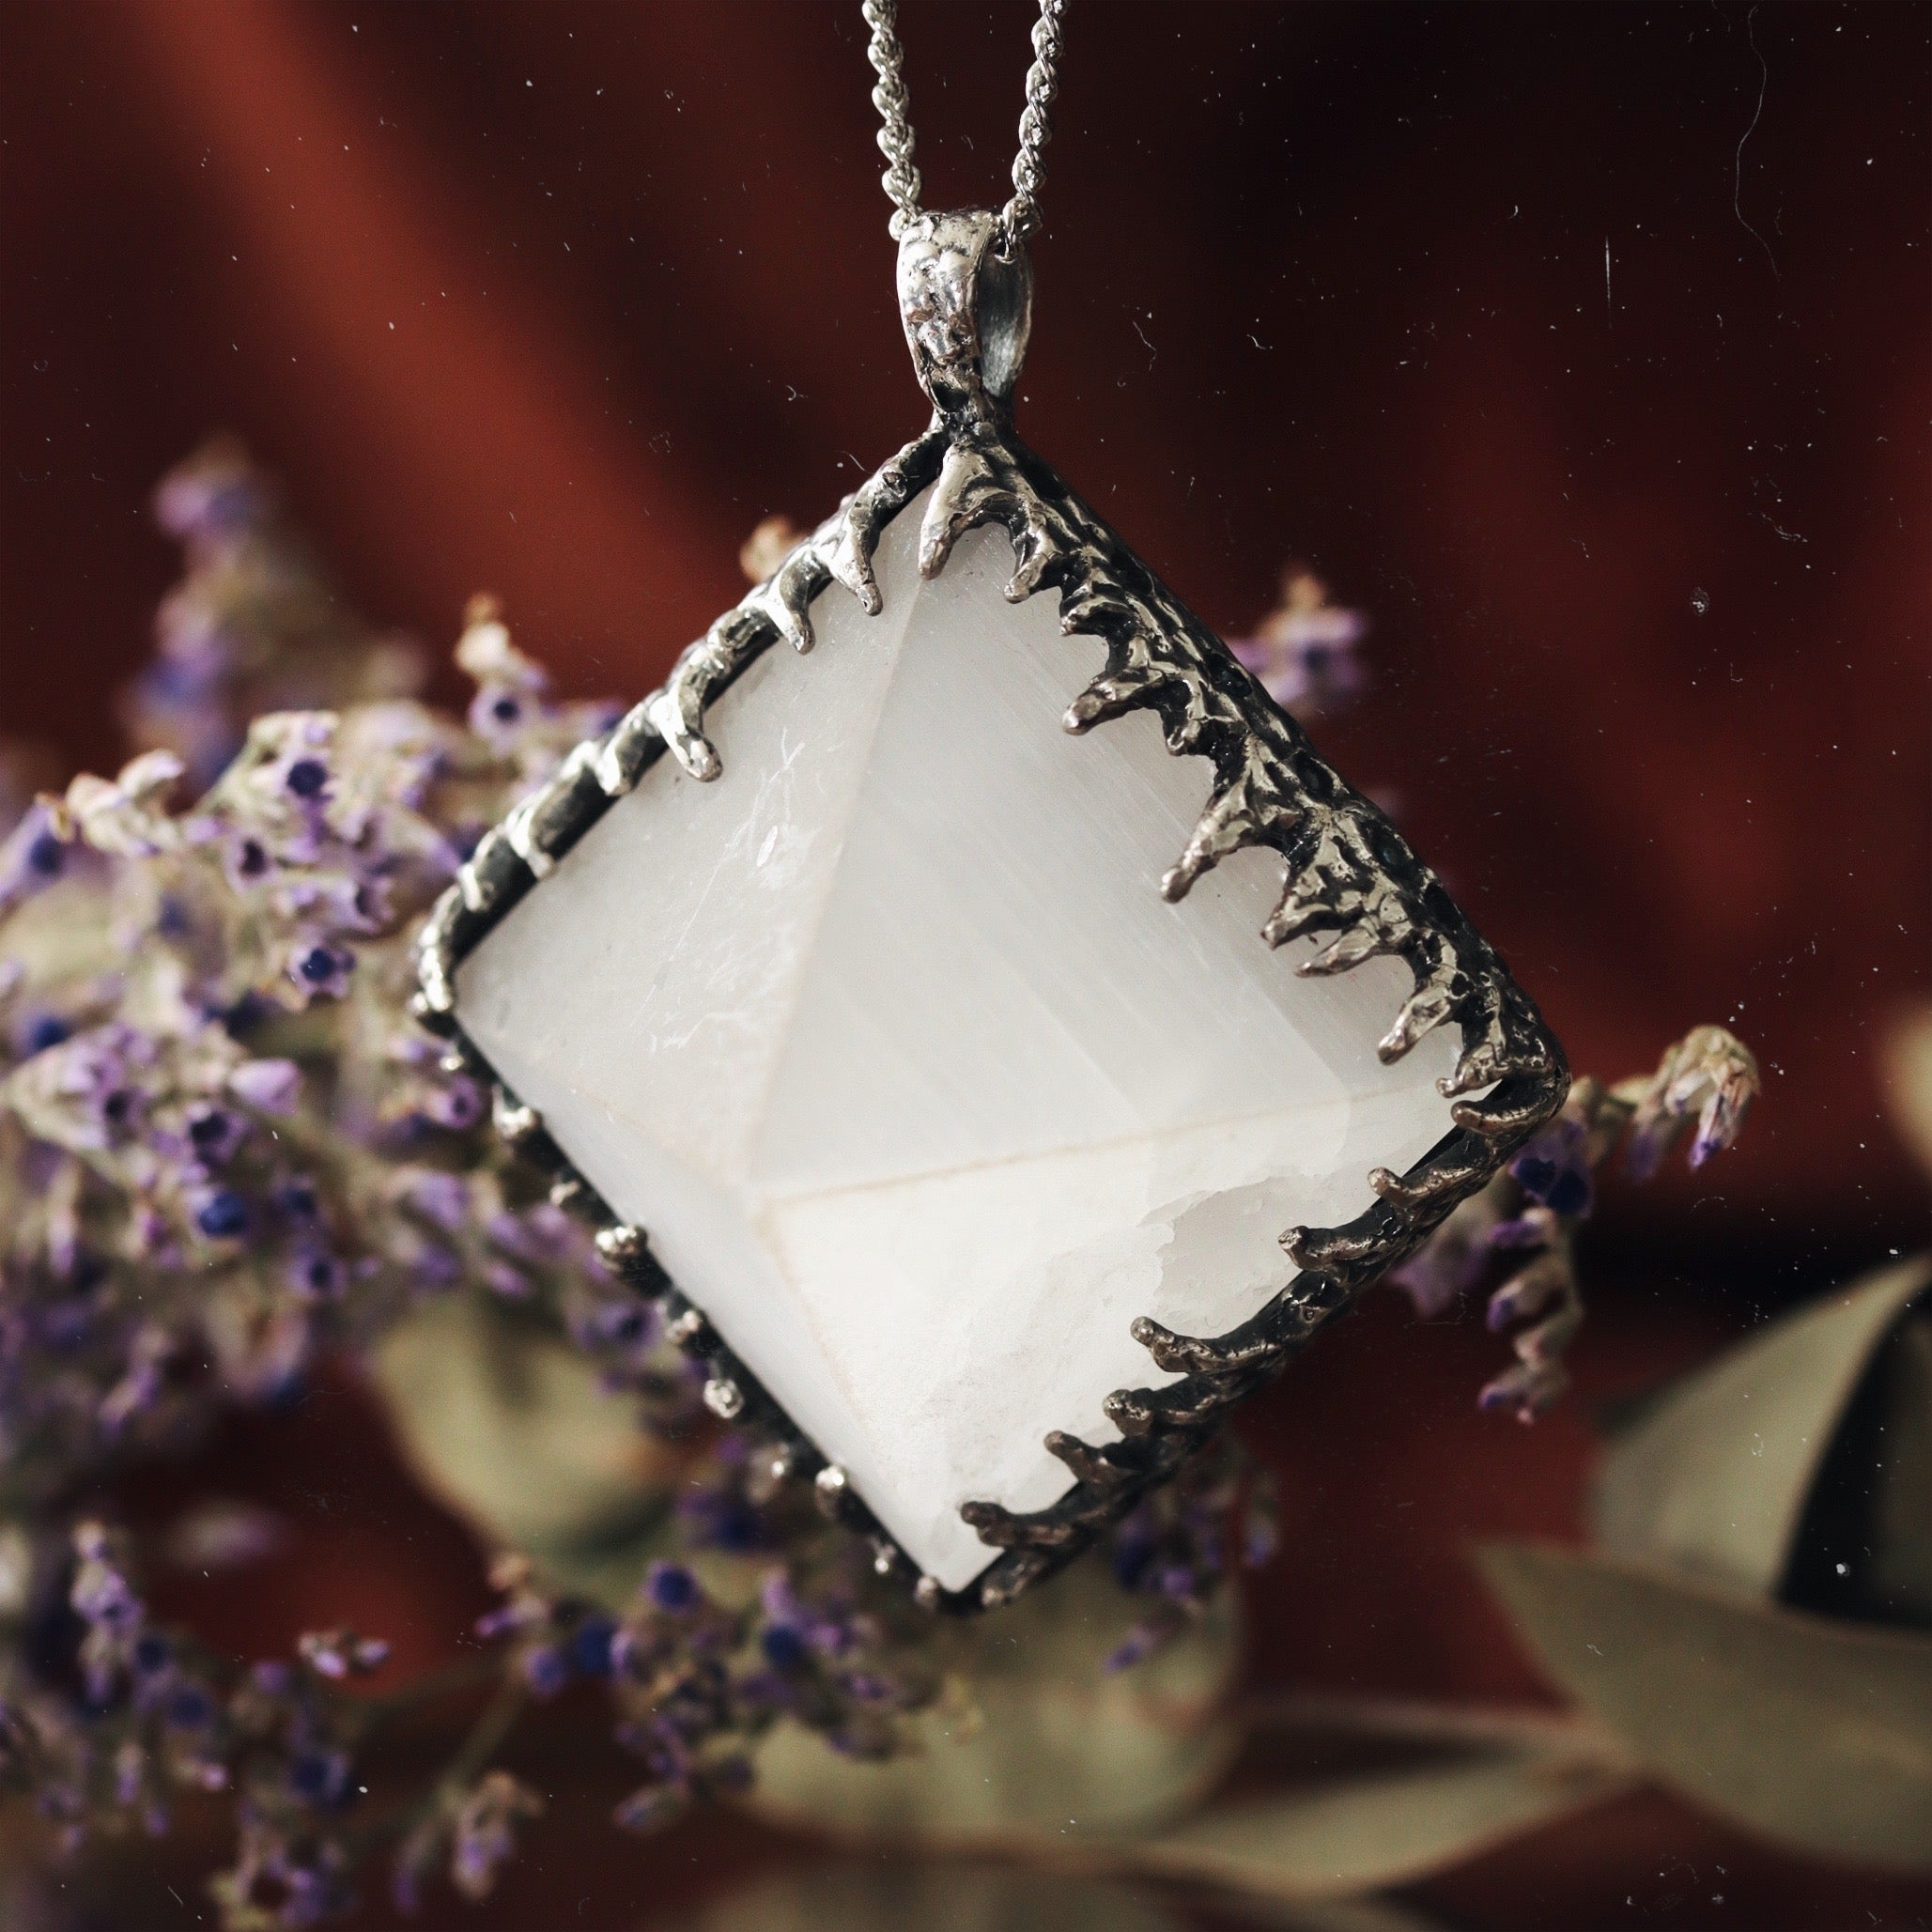 Freyr Selenite Icicle Crystal Pyramid Necklace #02